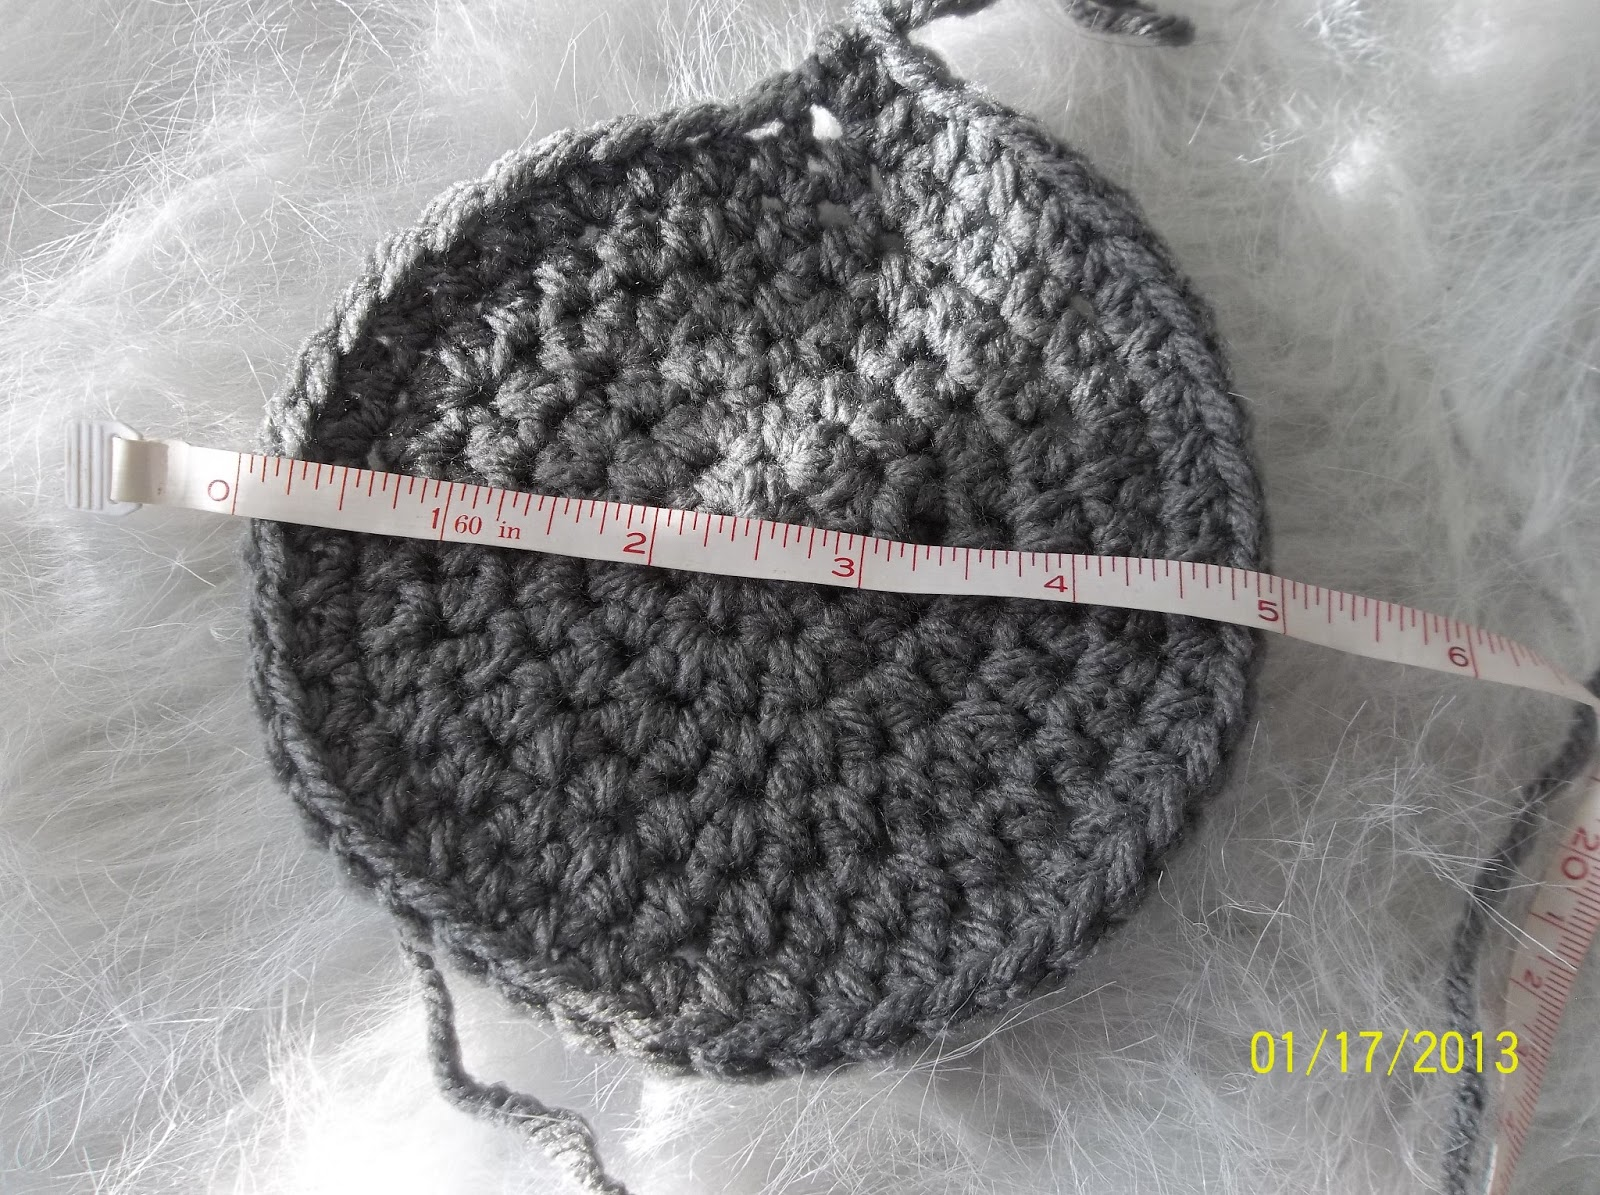 Creating beautiful things in life how to properly size crochet hats how to properly size crochet hats chart for correct sizing including magic circle sizes ccuart